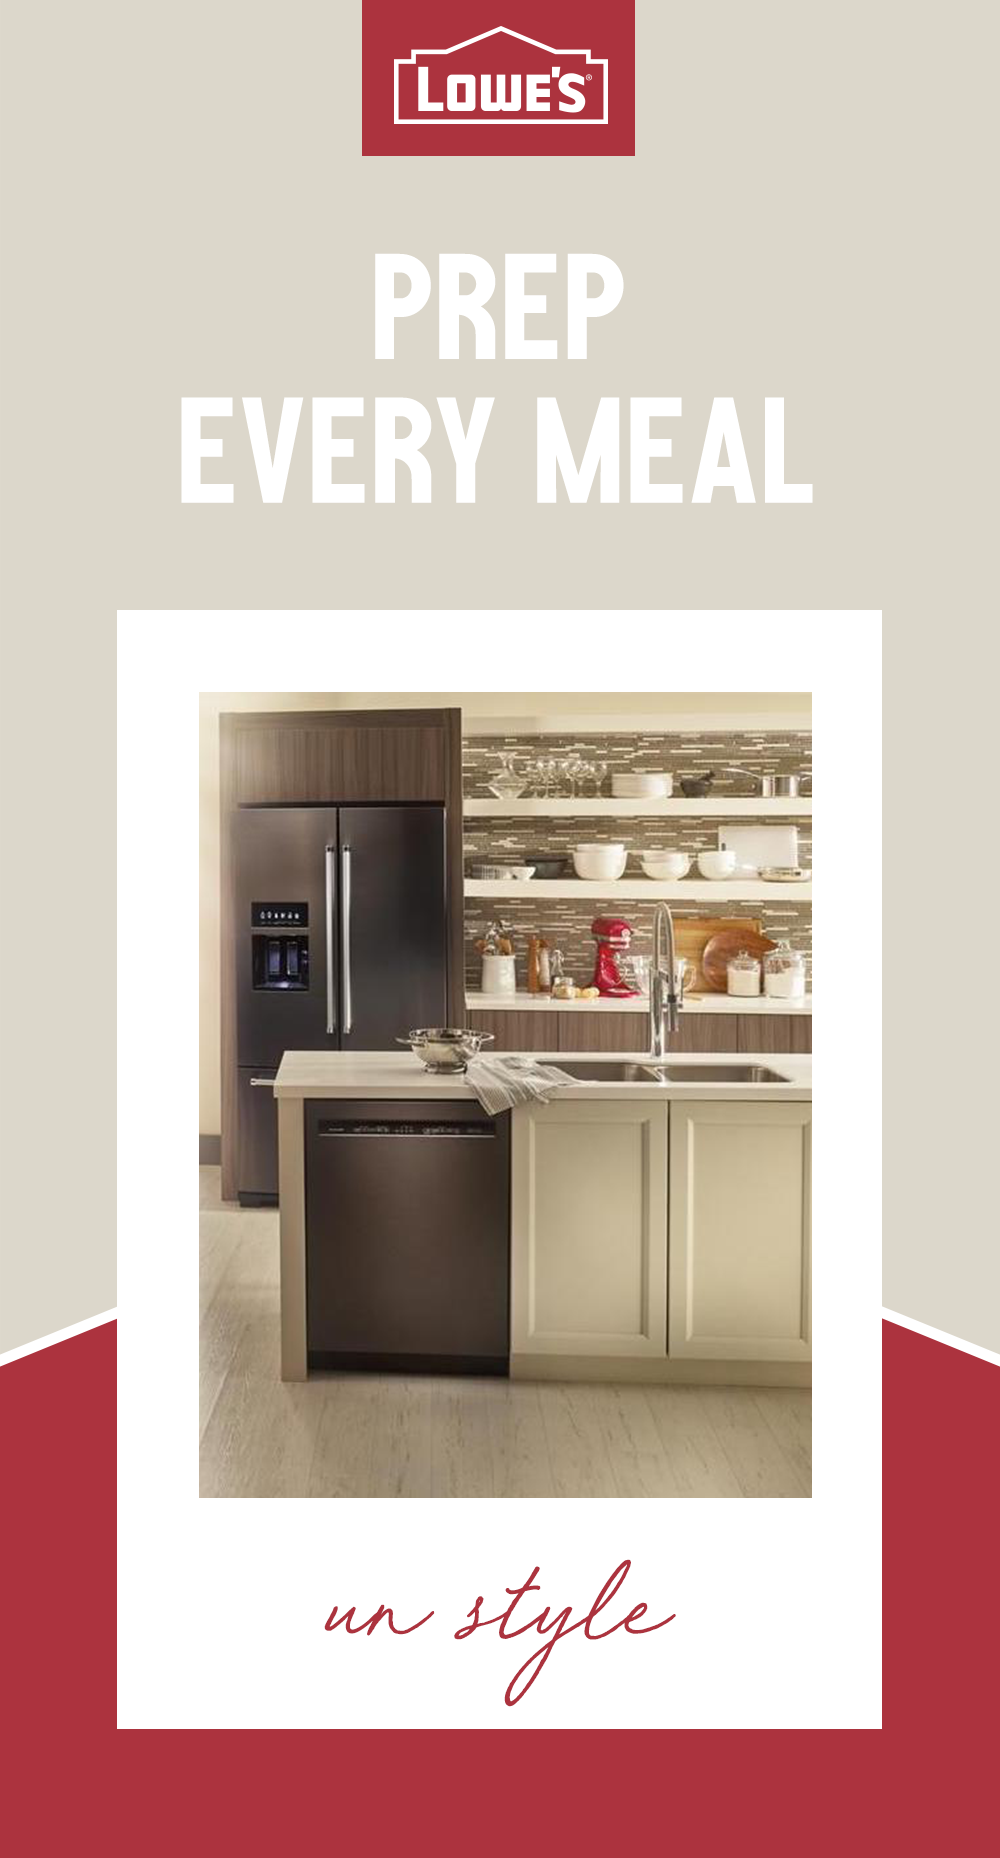 Lowe S Has Everything You Need To Create Your Dream Kitchen Visit Lowes Get Design Inspiration Make That A Reality Liances Homedecor